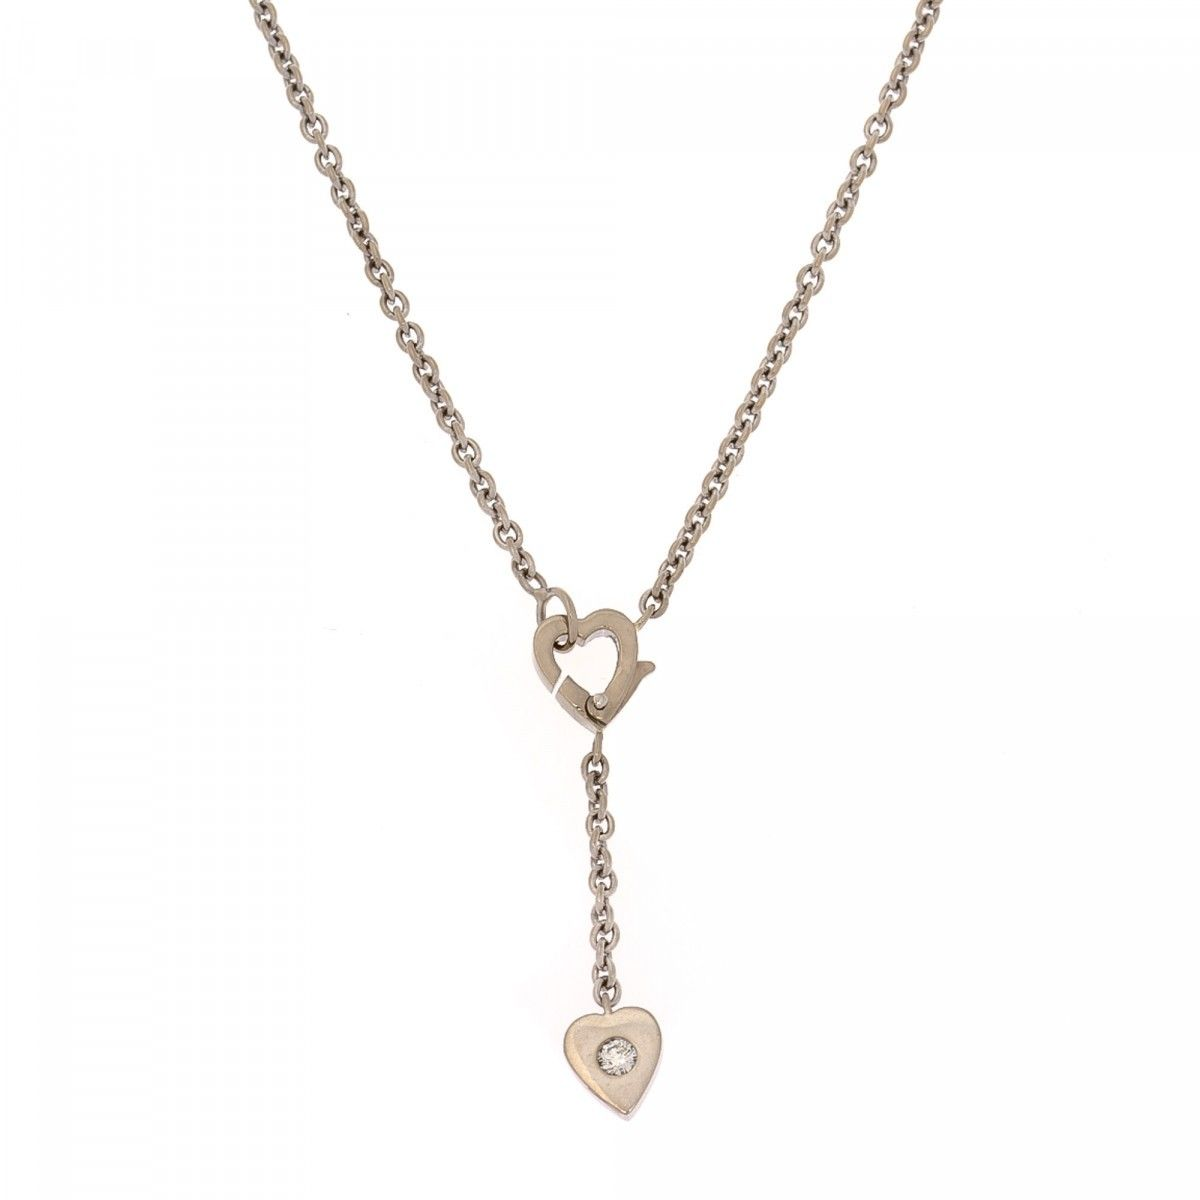 Cartier diamond heart necklace 43cm 18k white gold lxrandco cartier diamond heart necklace 43cm 18k white gold lxrandco pre owned luxury vintage mozeypictures Image collections